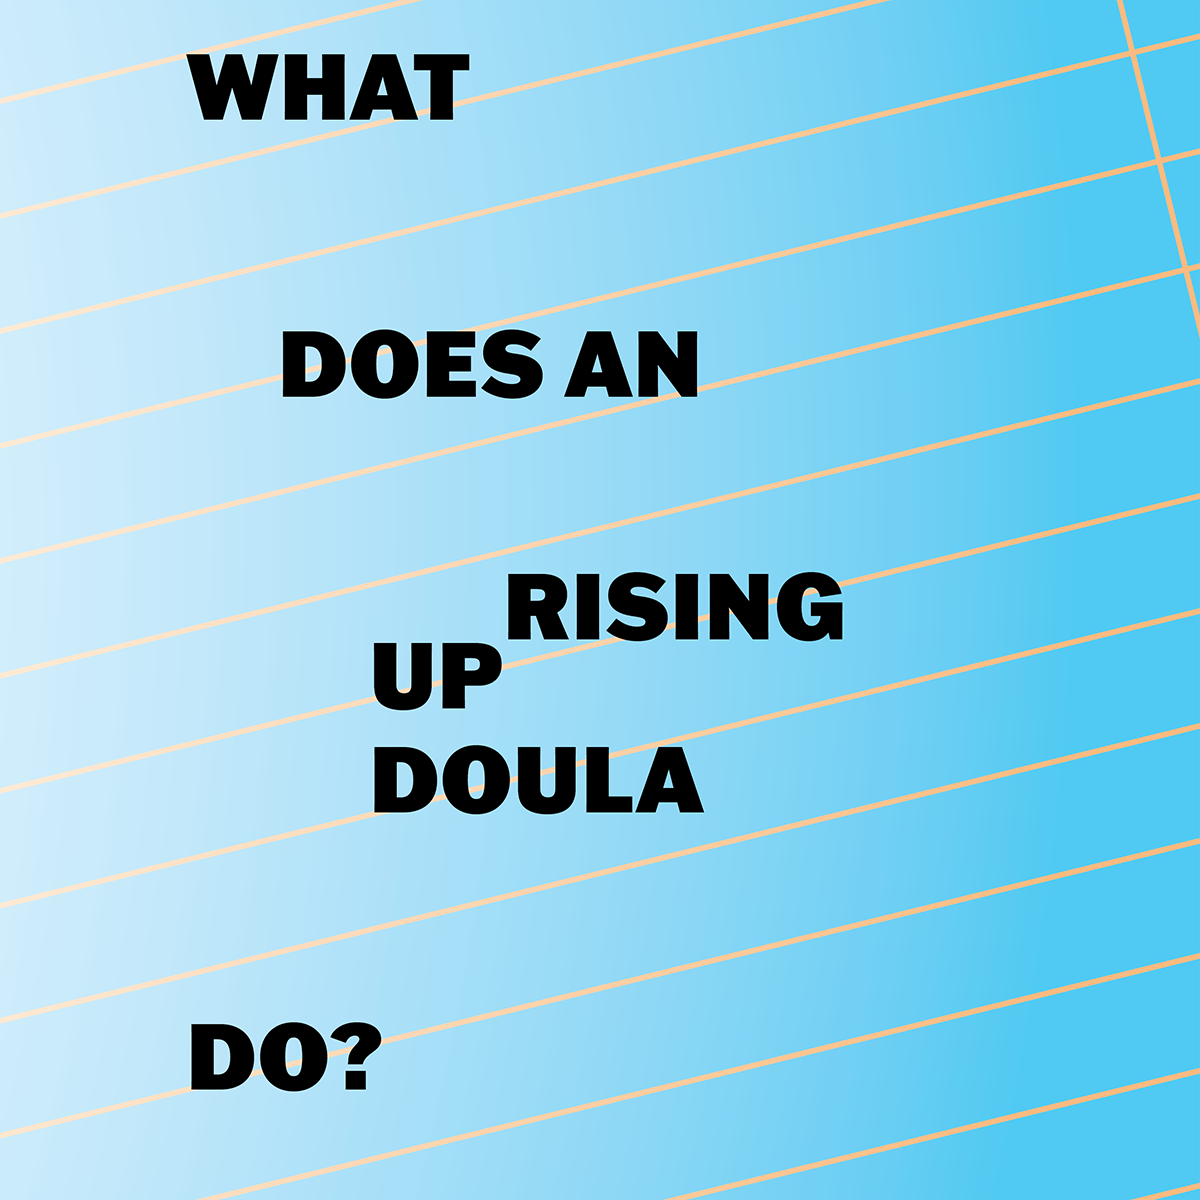 white to blue gradient ombre background. What Does An Uprising doula Do? in bold printed three times horizontally